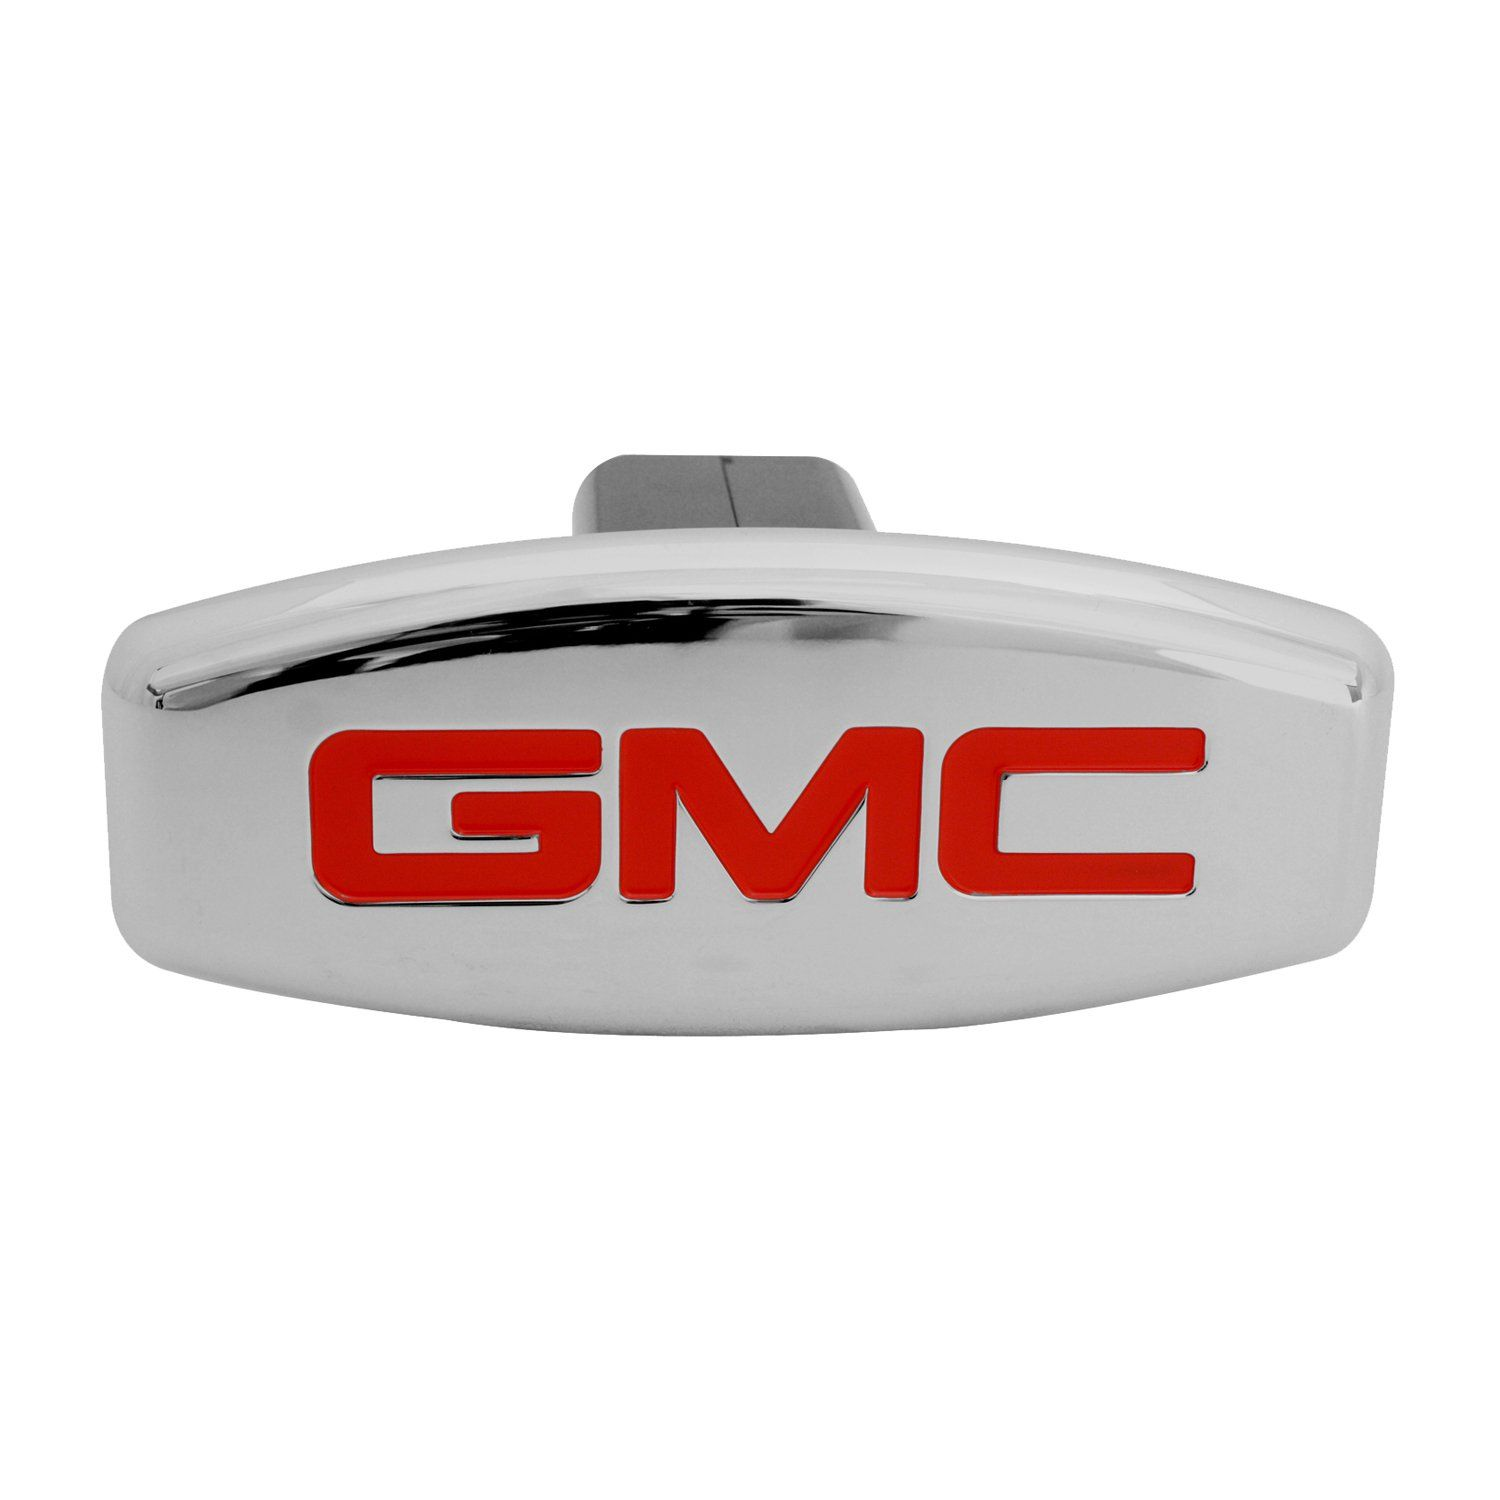 Tow Hitch Covers 2 Trailer Class Ii Cover Hitch 1 1 4 Inch And 2